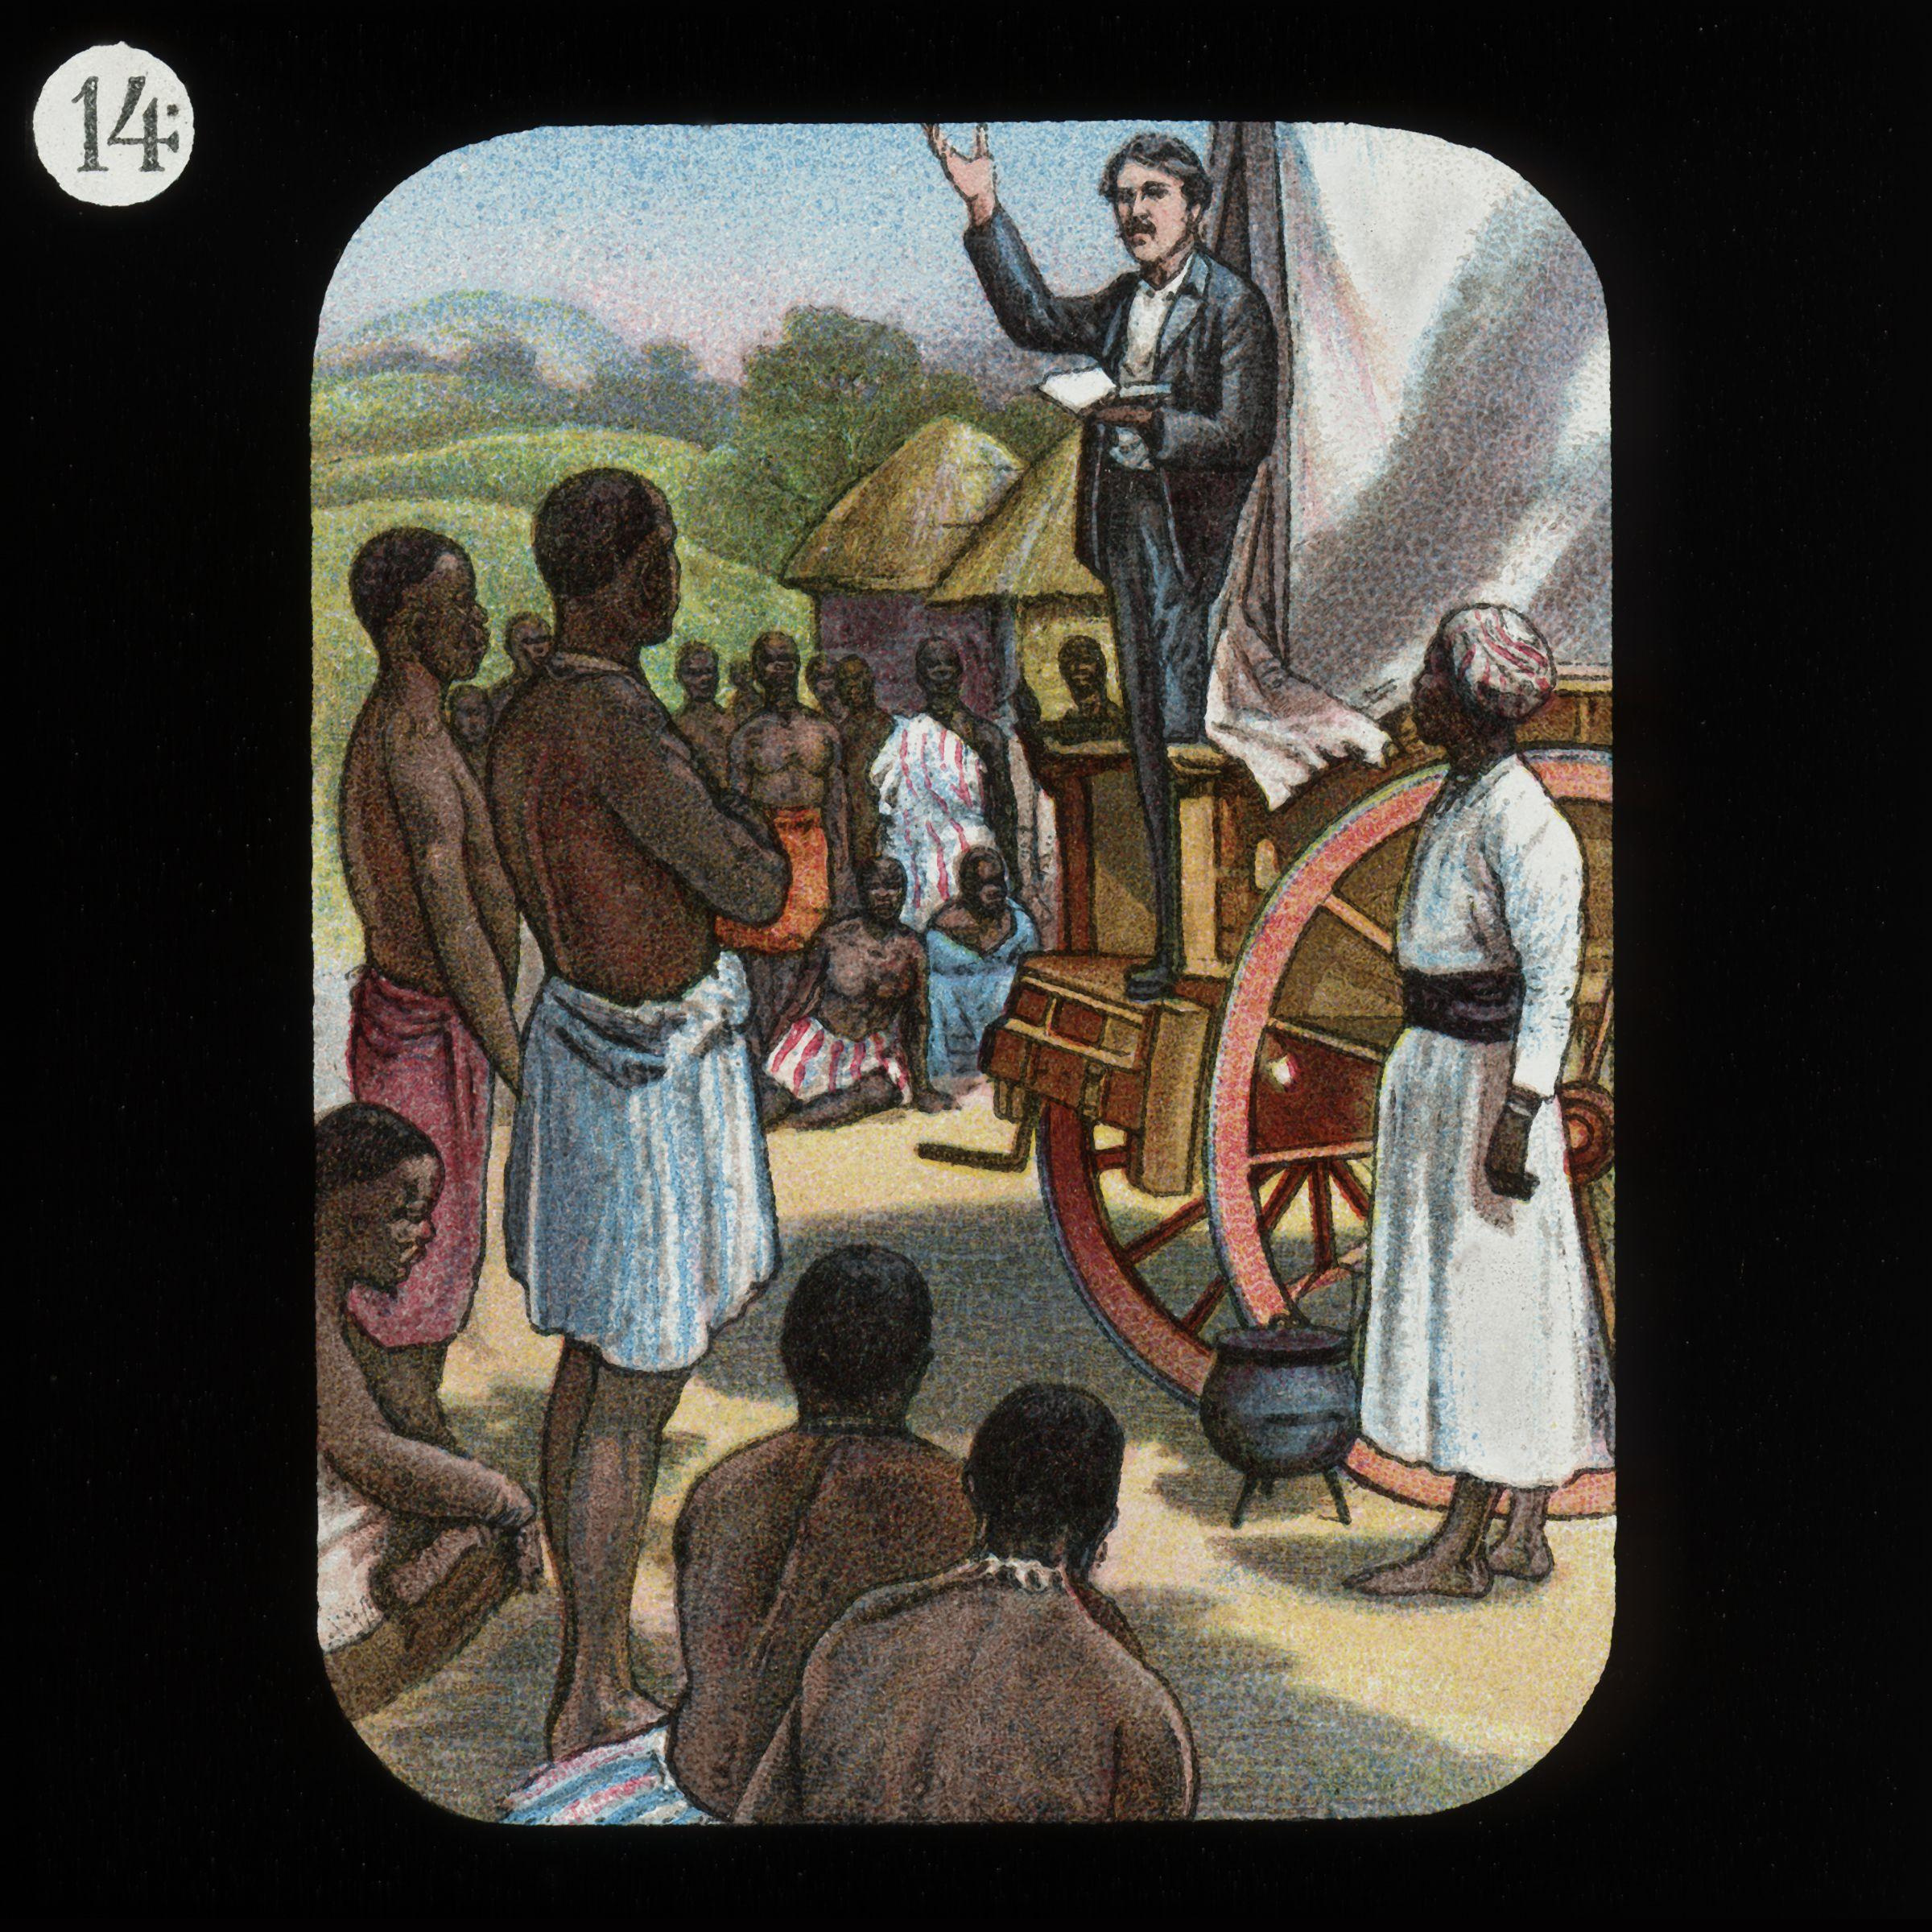 David Livingstone, early explorer of the interior of Africa and fighter against the slave trade.